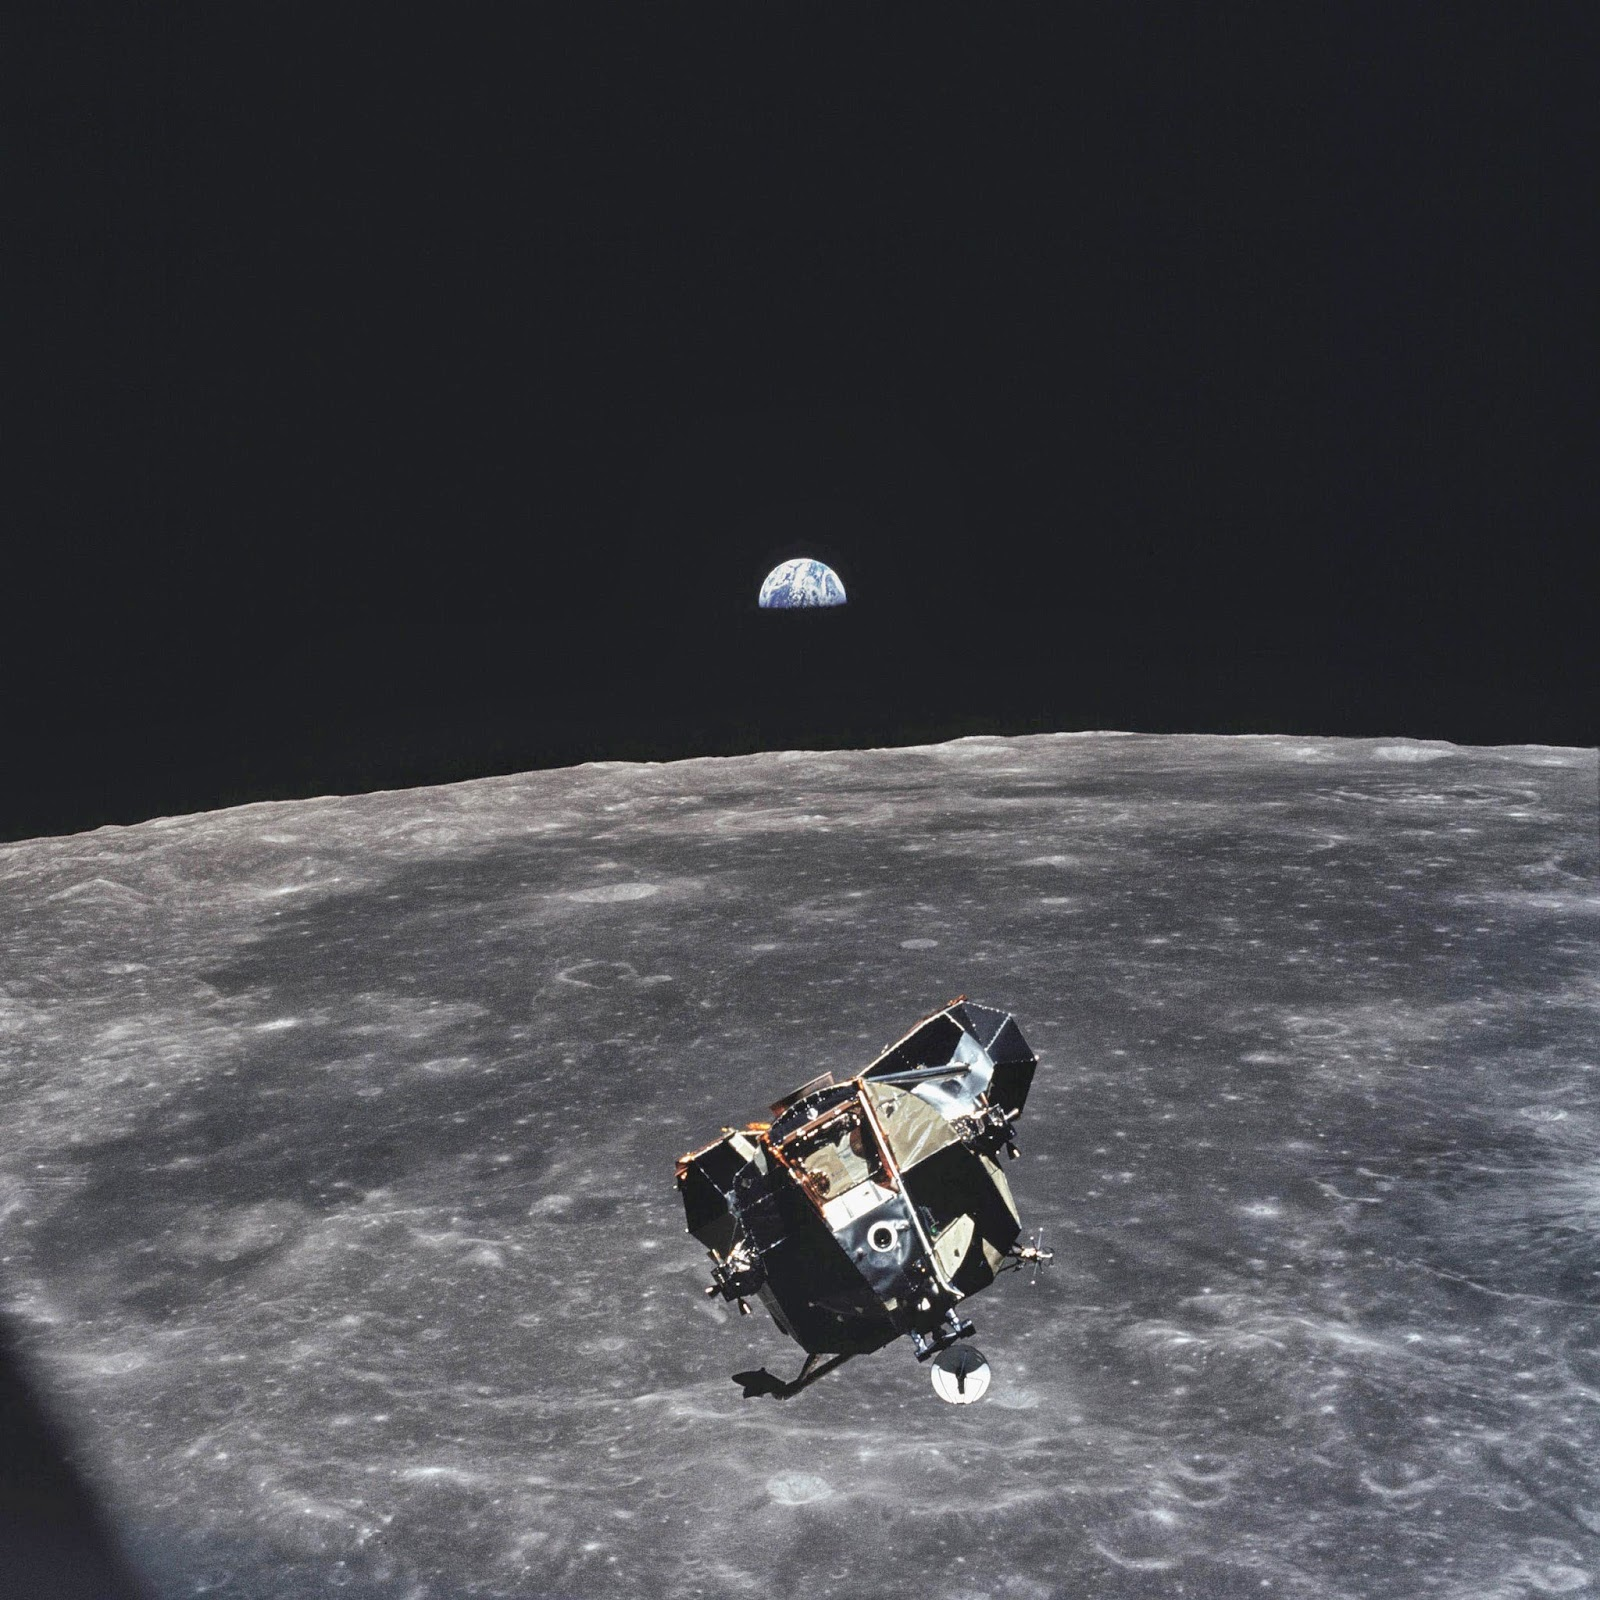 Michael Collins The Astronaut Who Took This Photo Is Only Human Alive Or Dead That Isnt In Frame Of Picture 1969